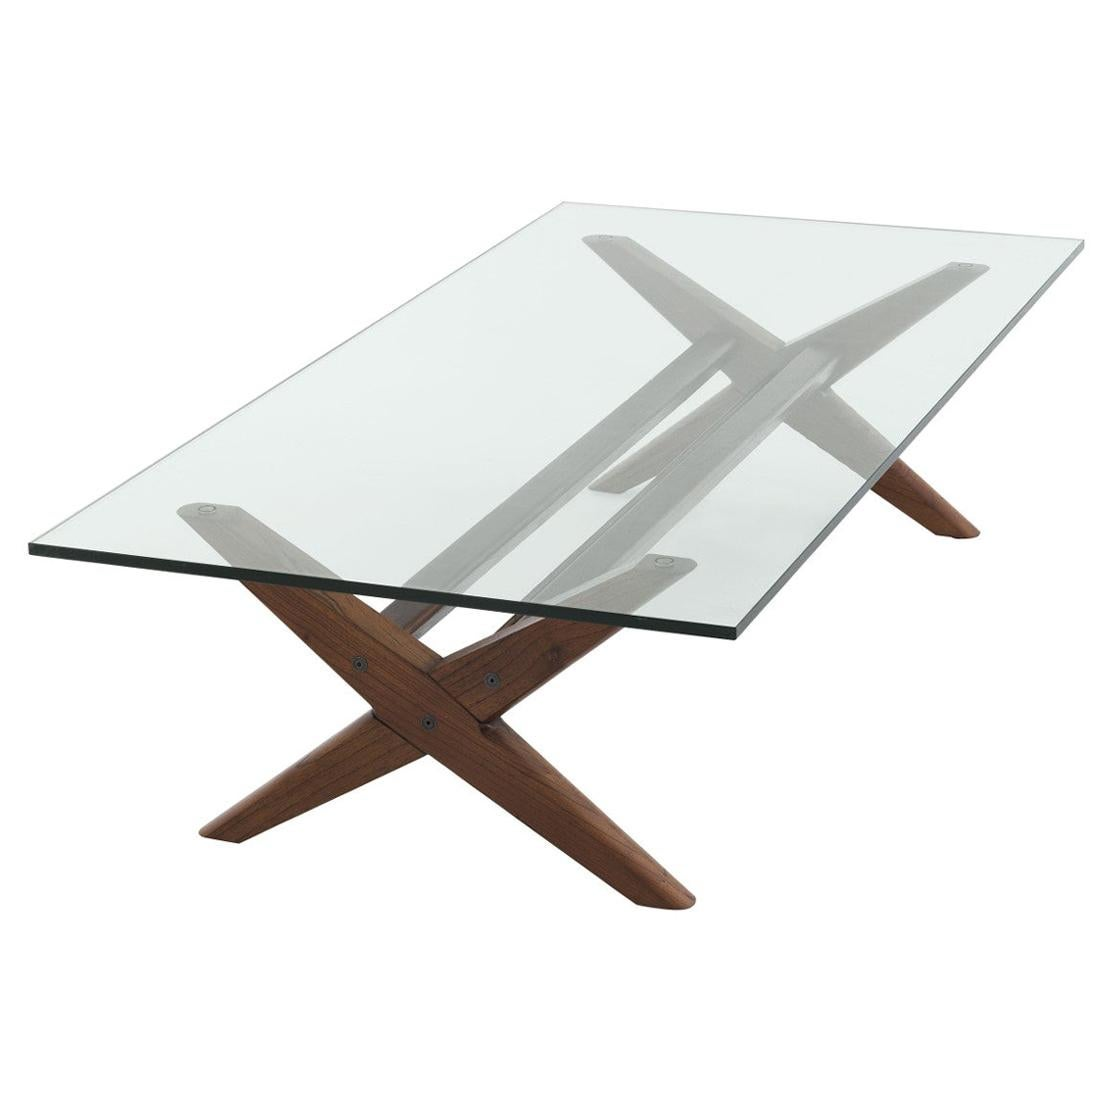 1960s Design Style Wooden and Glass Coffee Table